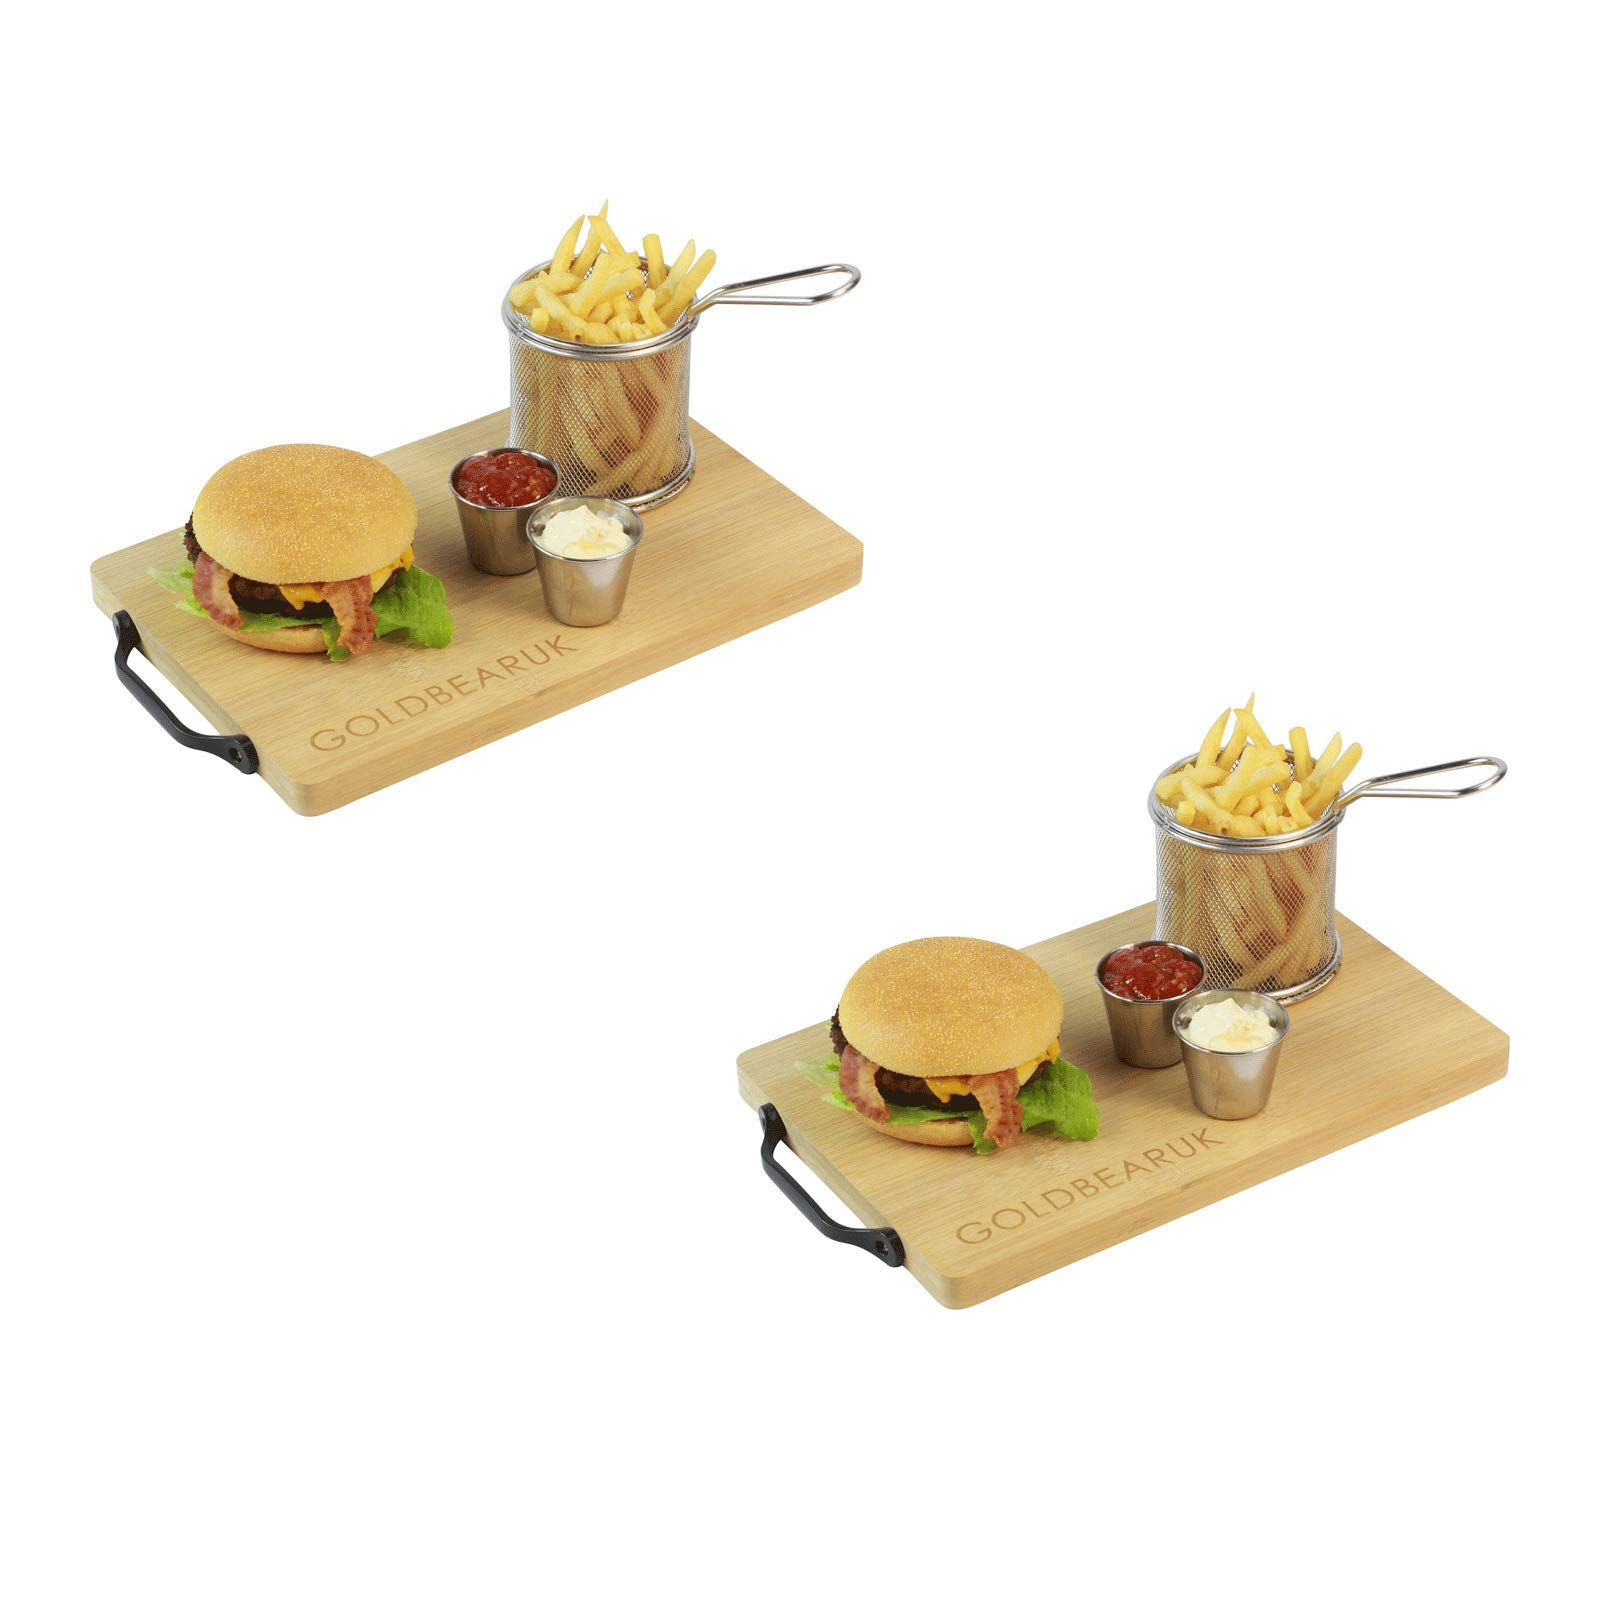 Luxury Burger Set - Wooden Serving Boards + Stainless Steel Chip Fry Basket + Stainless Steel Silver Ramekins (2 Person)